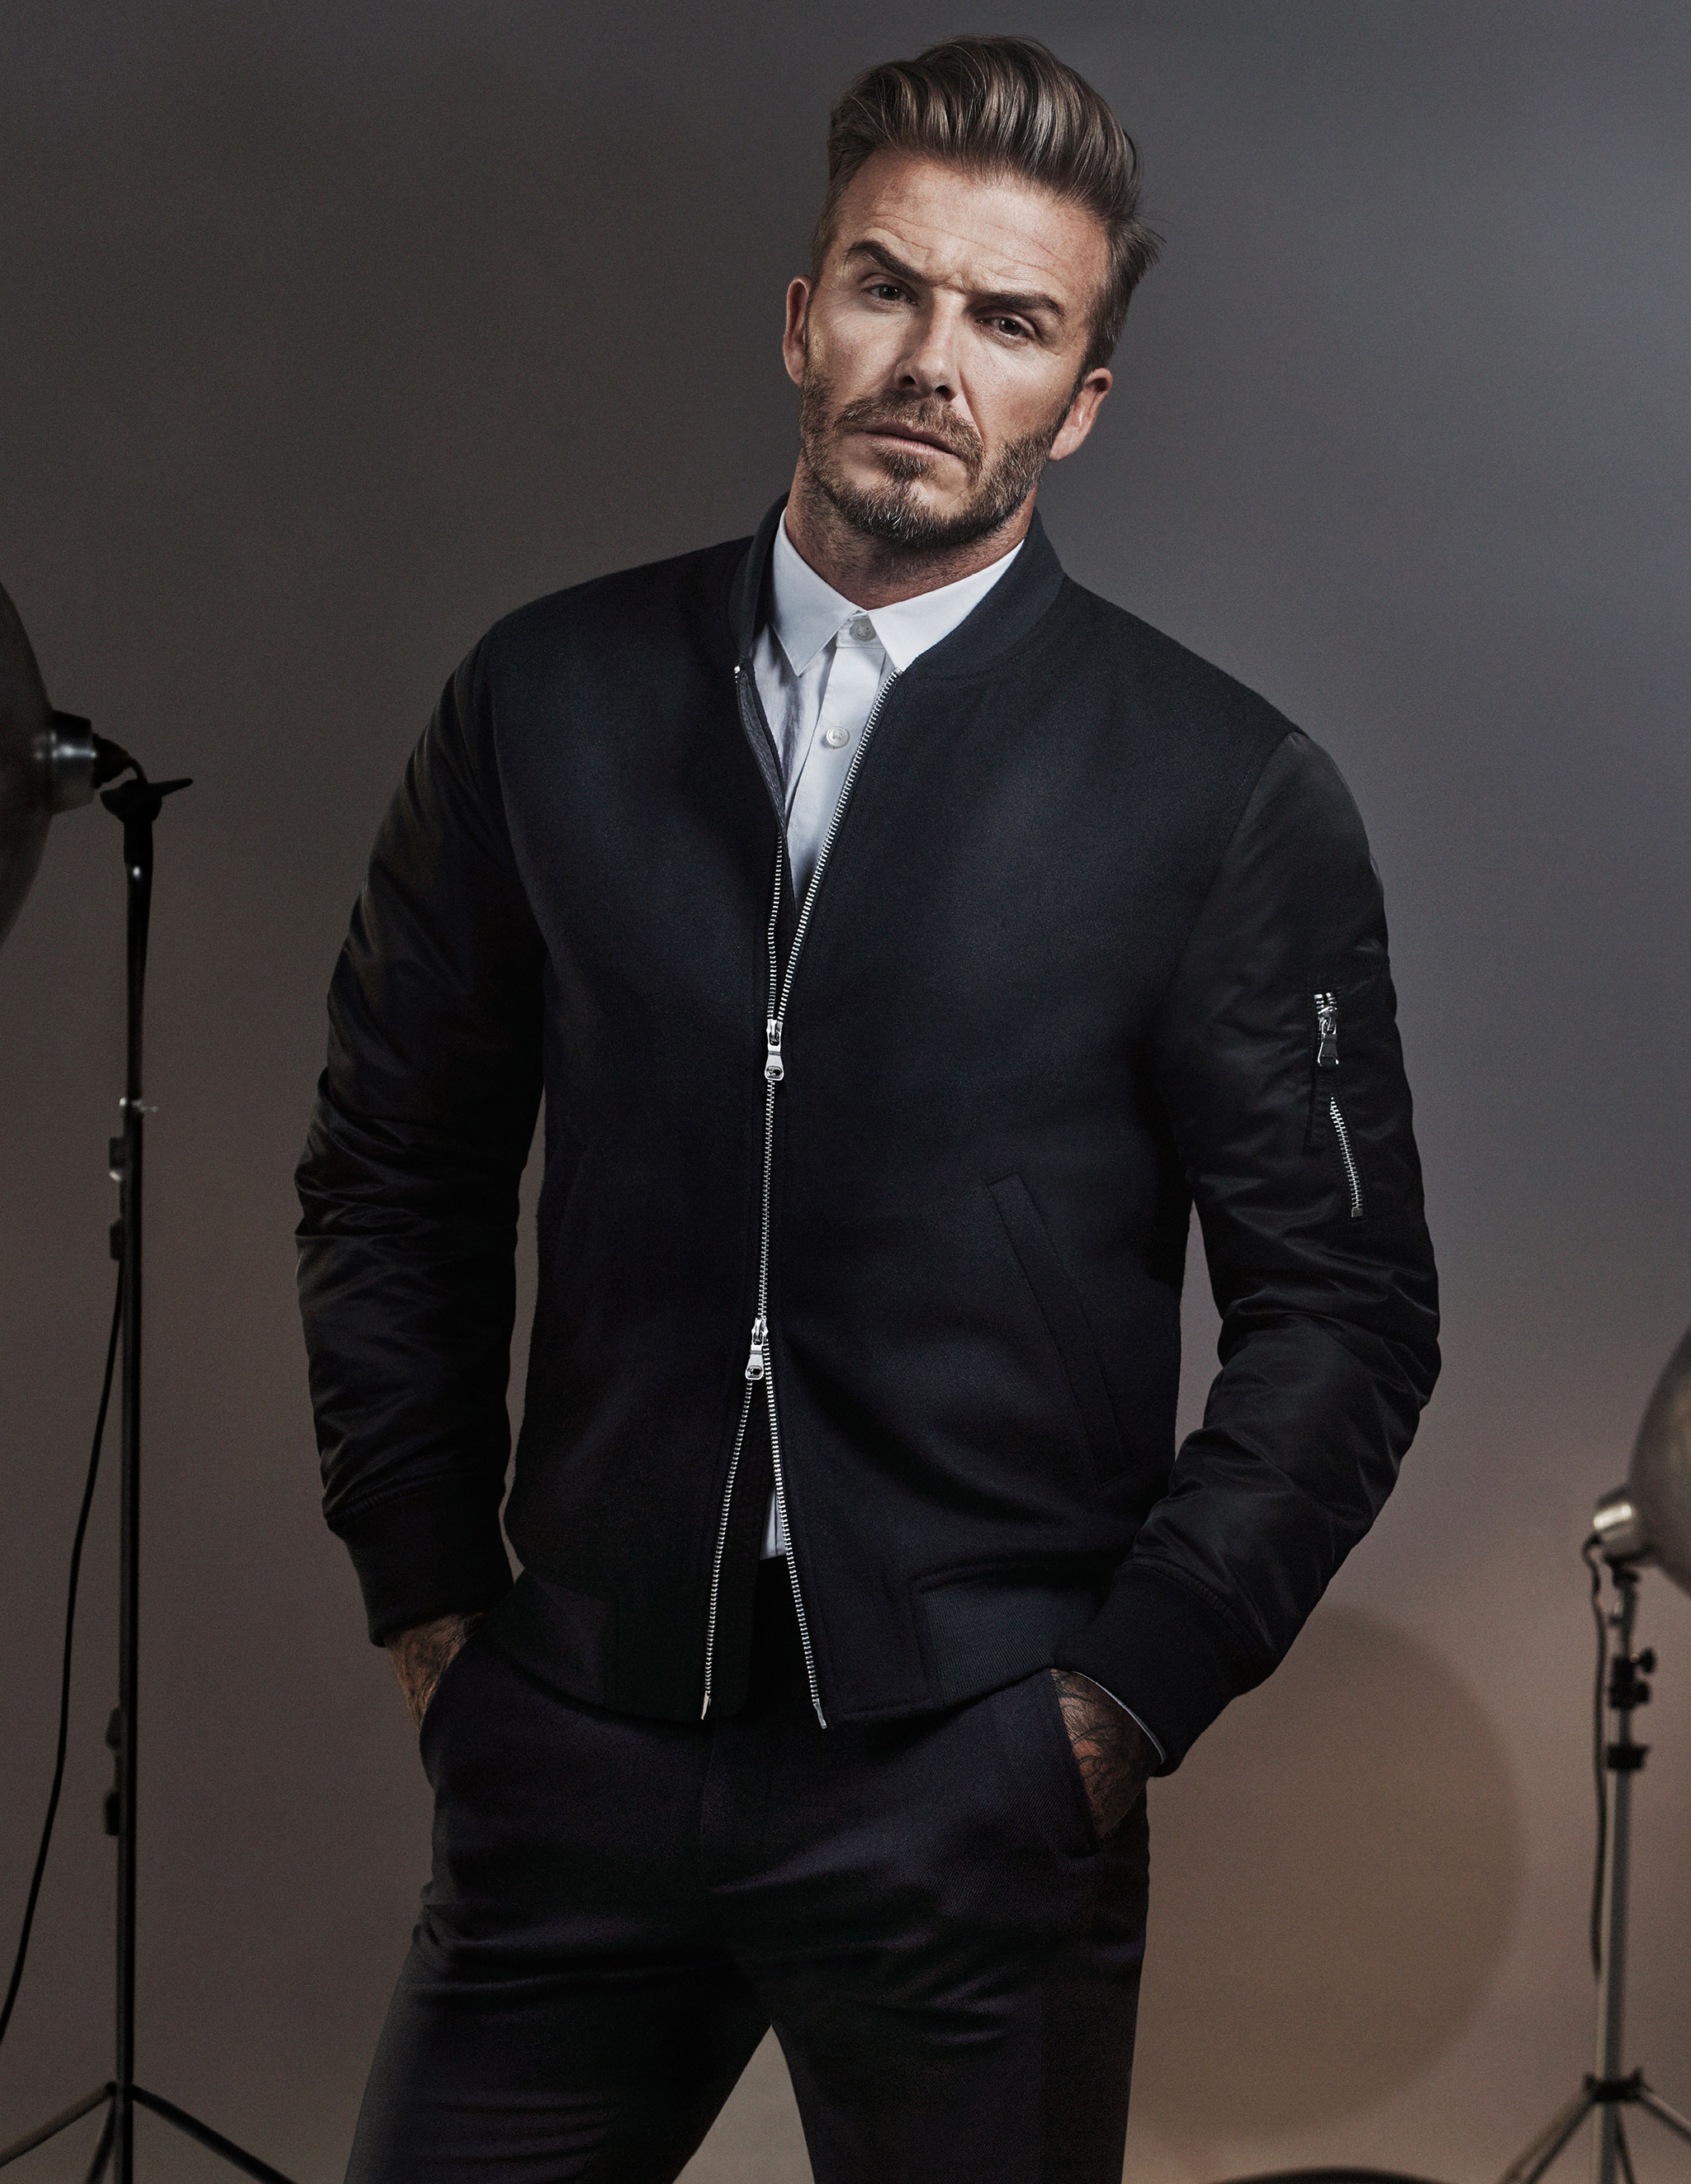 David Beckham and Kevin Hart Star in New H&M Campaign ... David Beckham